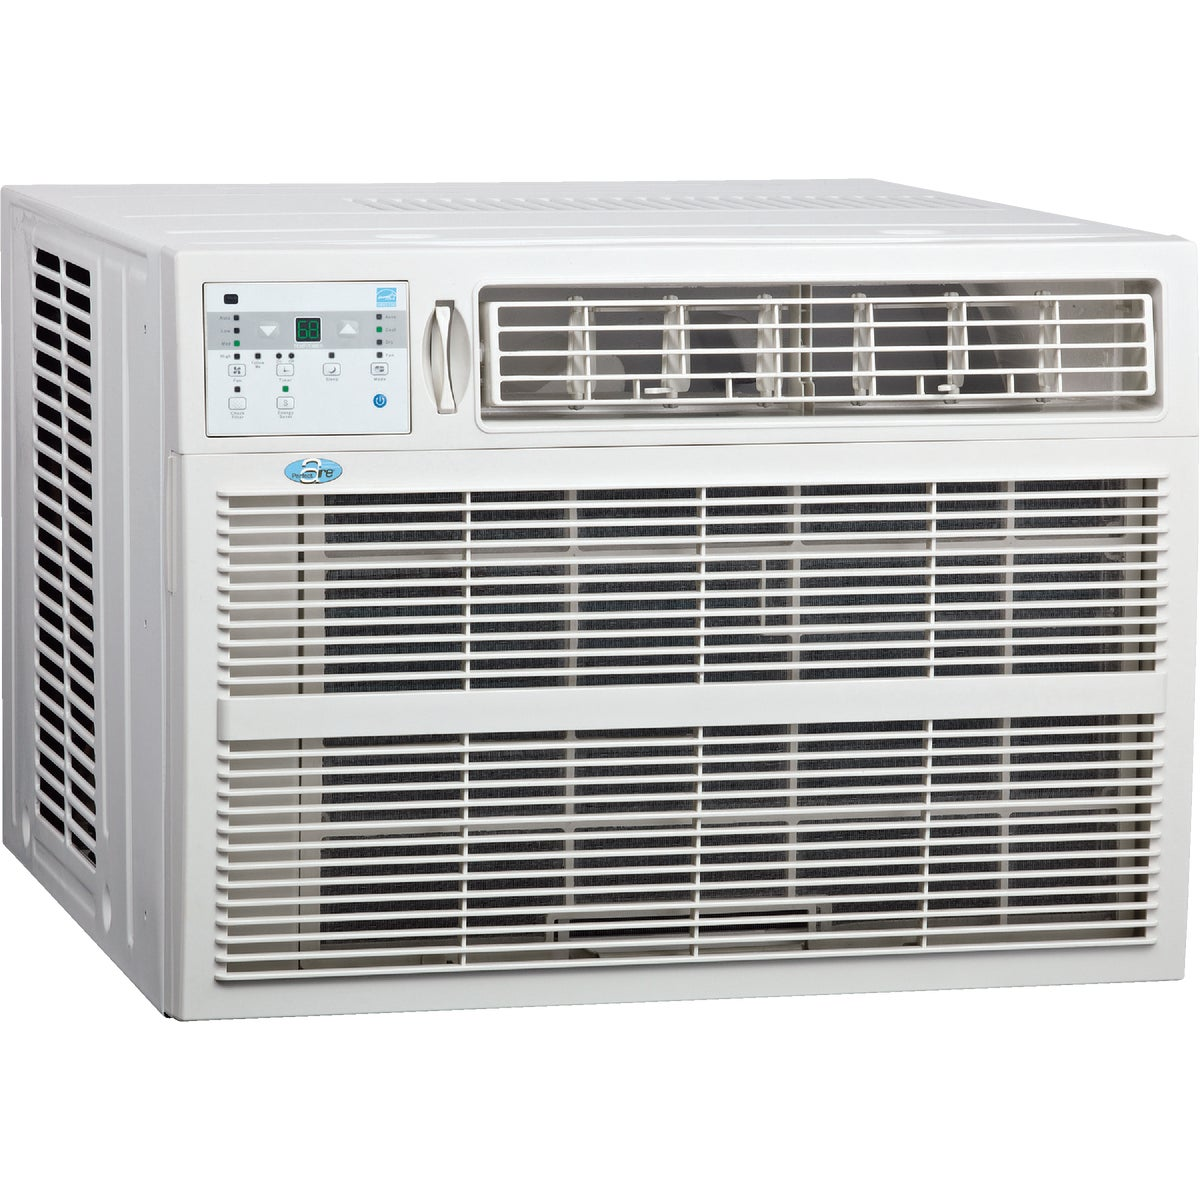 25 000 BTU WINDOW A/C - 2PAC25000 by Perfect Aire Import